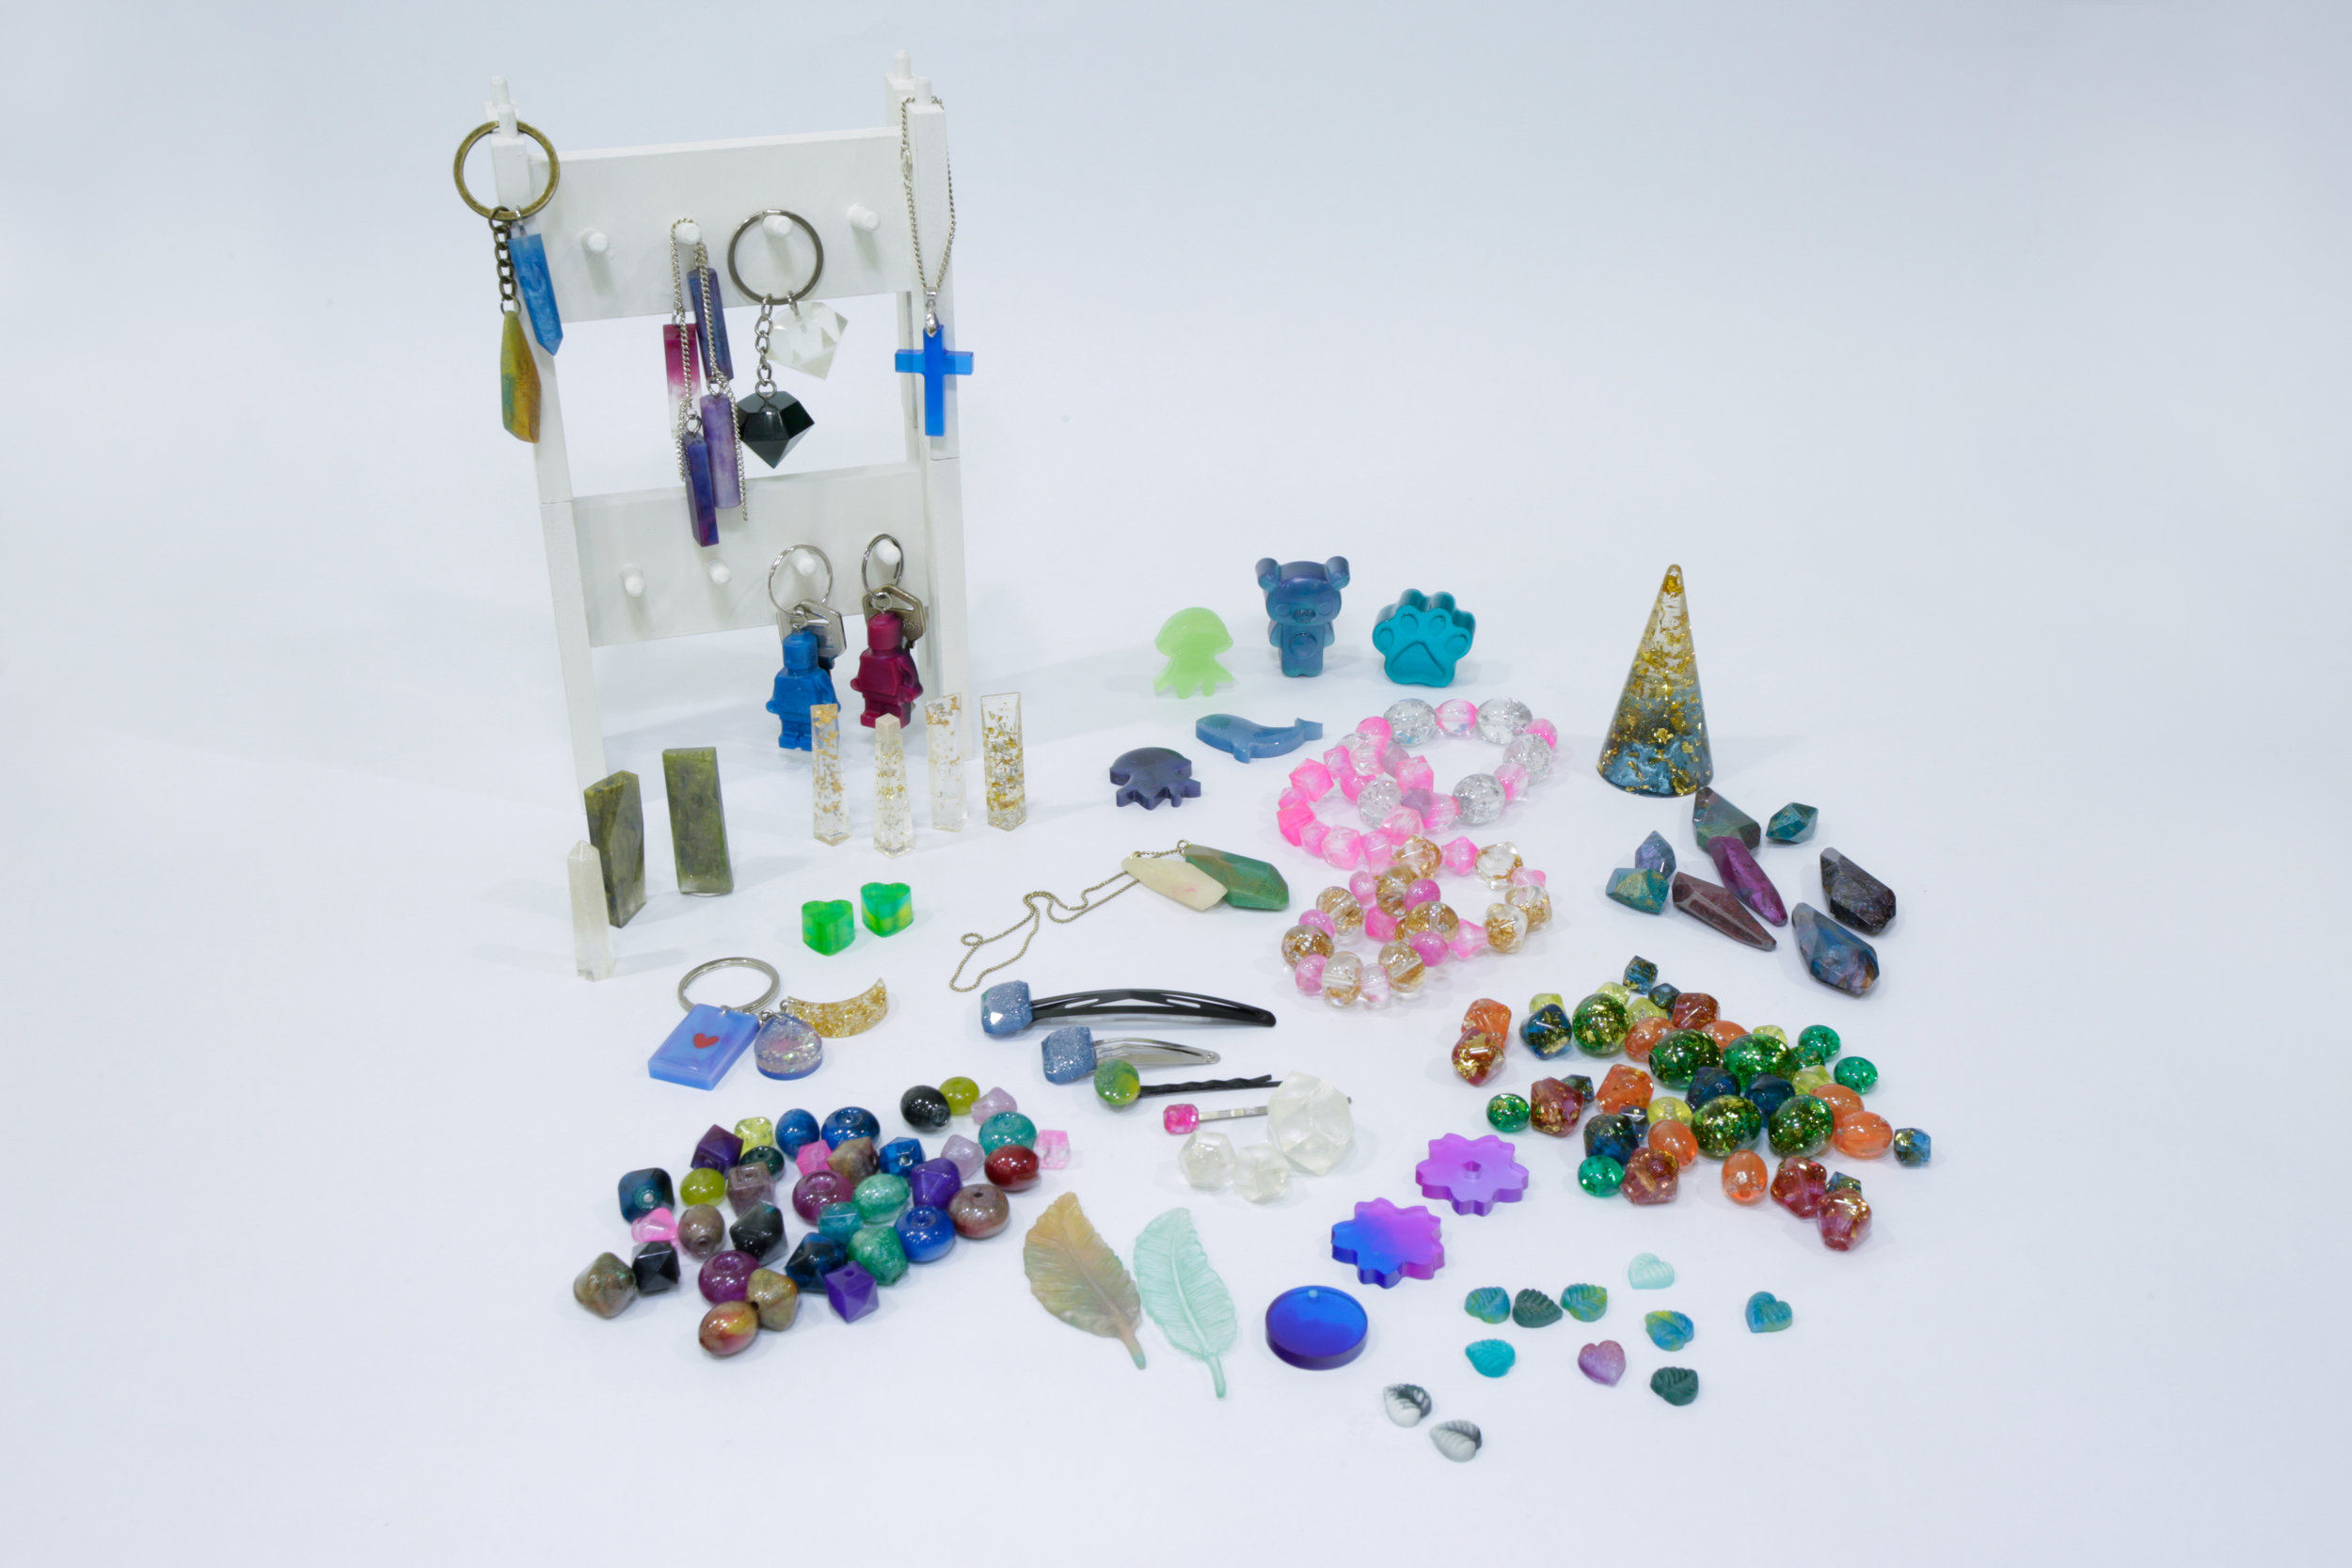 Collection of small ornaments and accessories made of Resin